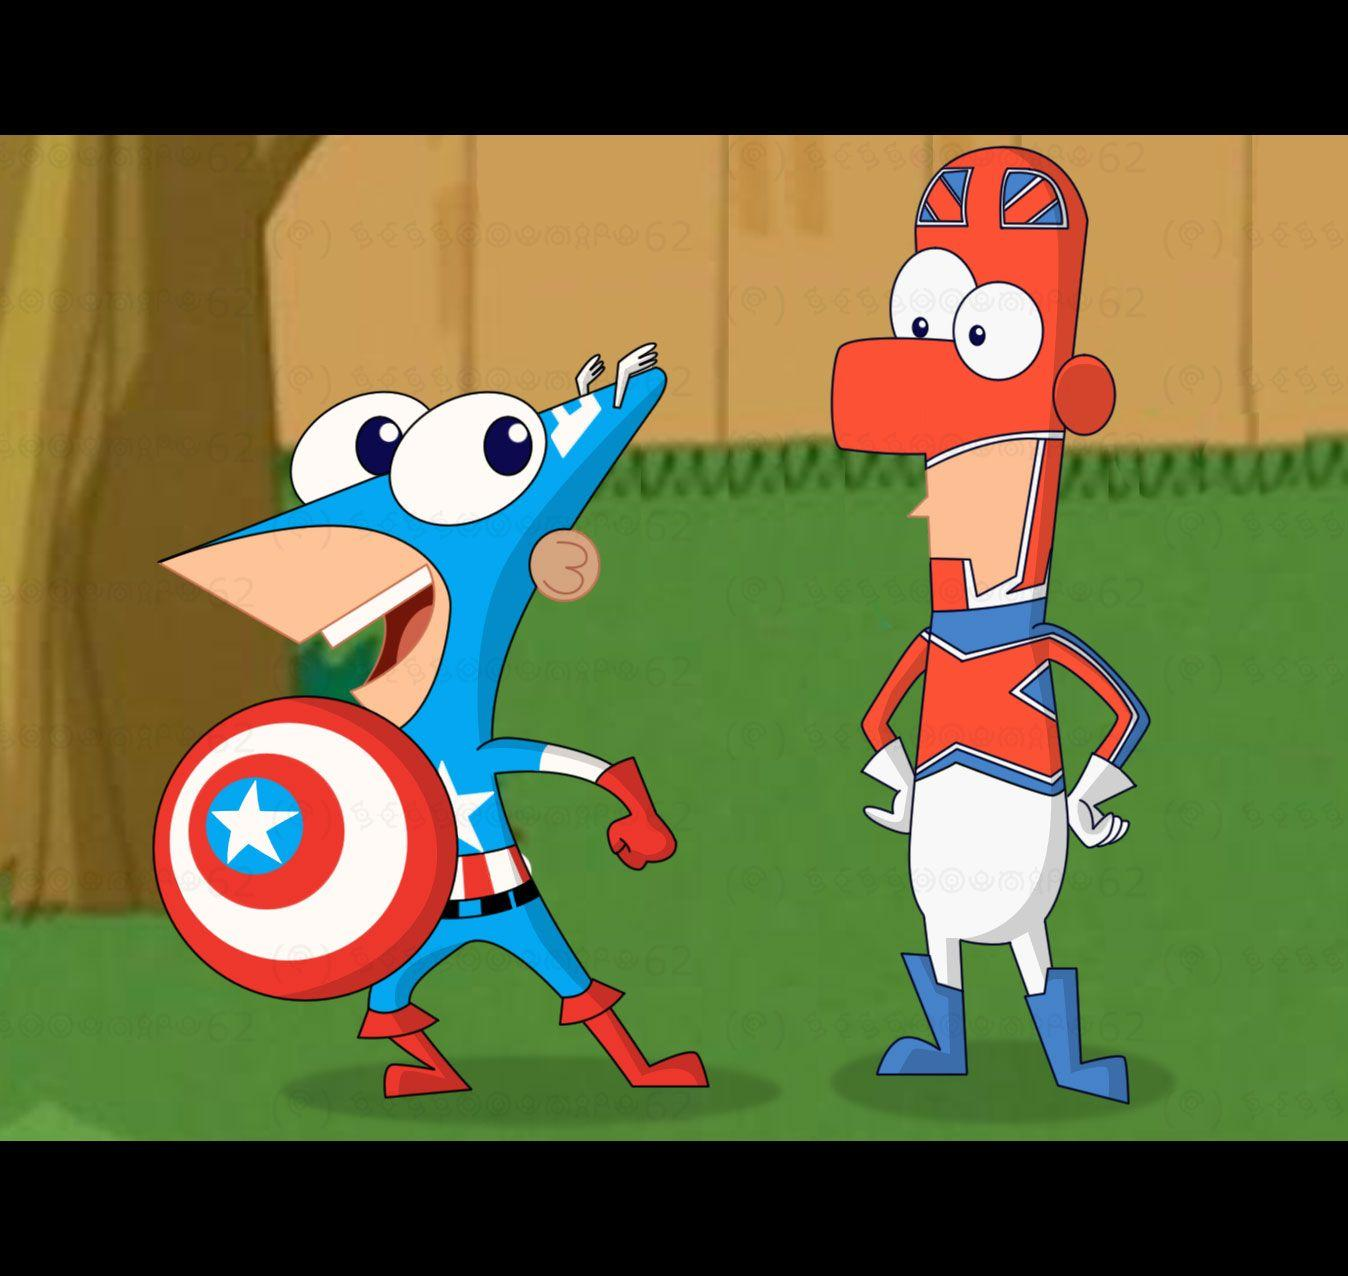 Phineas And Ferb | Phineas and Ferb Marvel Superheroes - Phineas ...